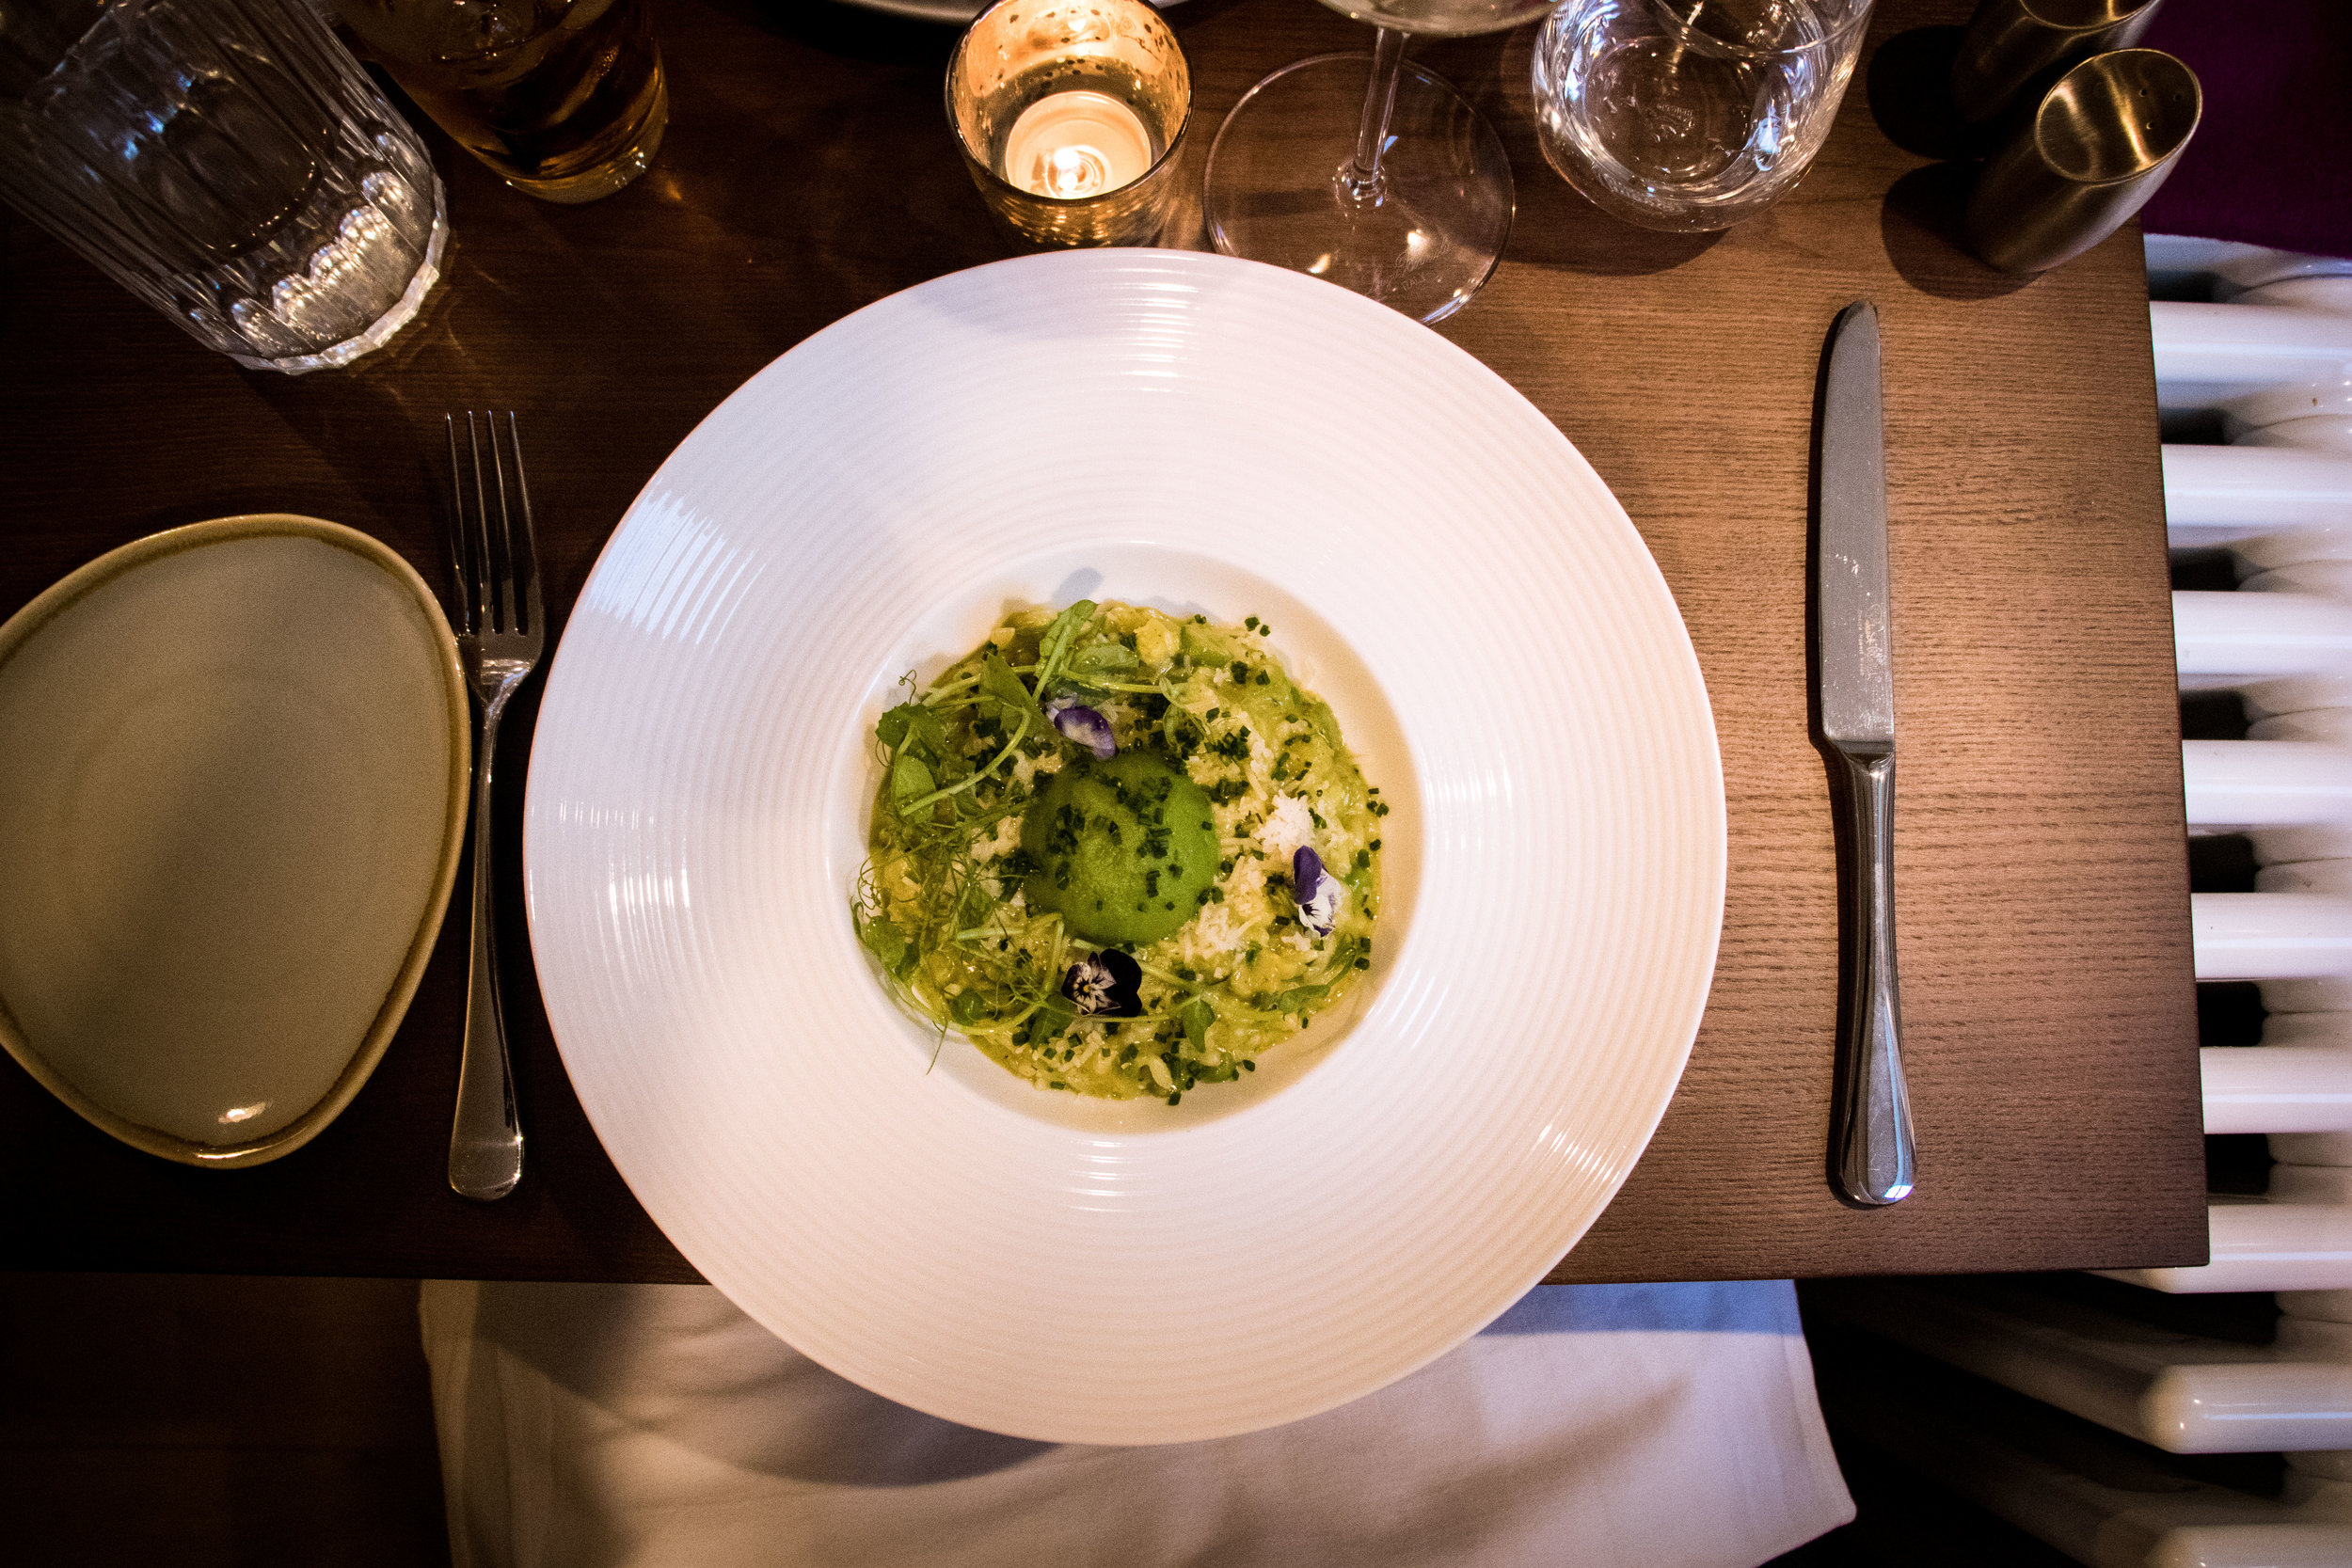 'Green risotto with courgettes, peas, fresh herbs and mascarpone' (£11.50)